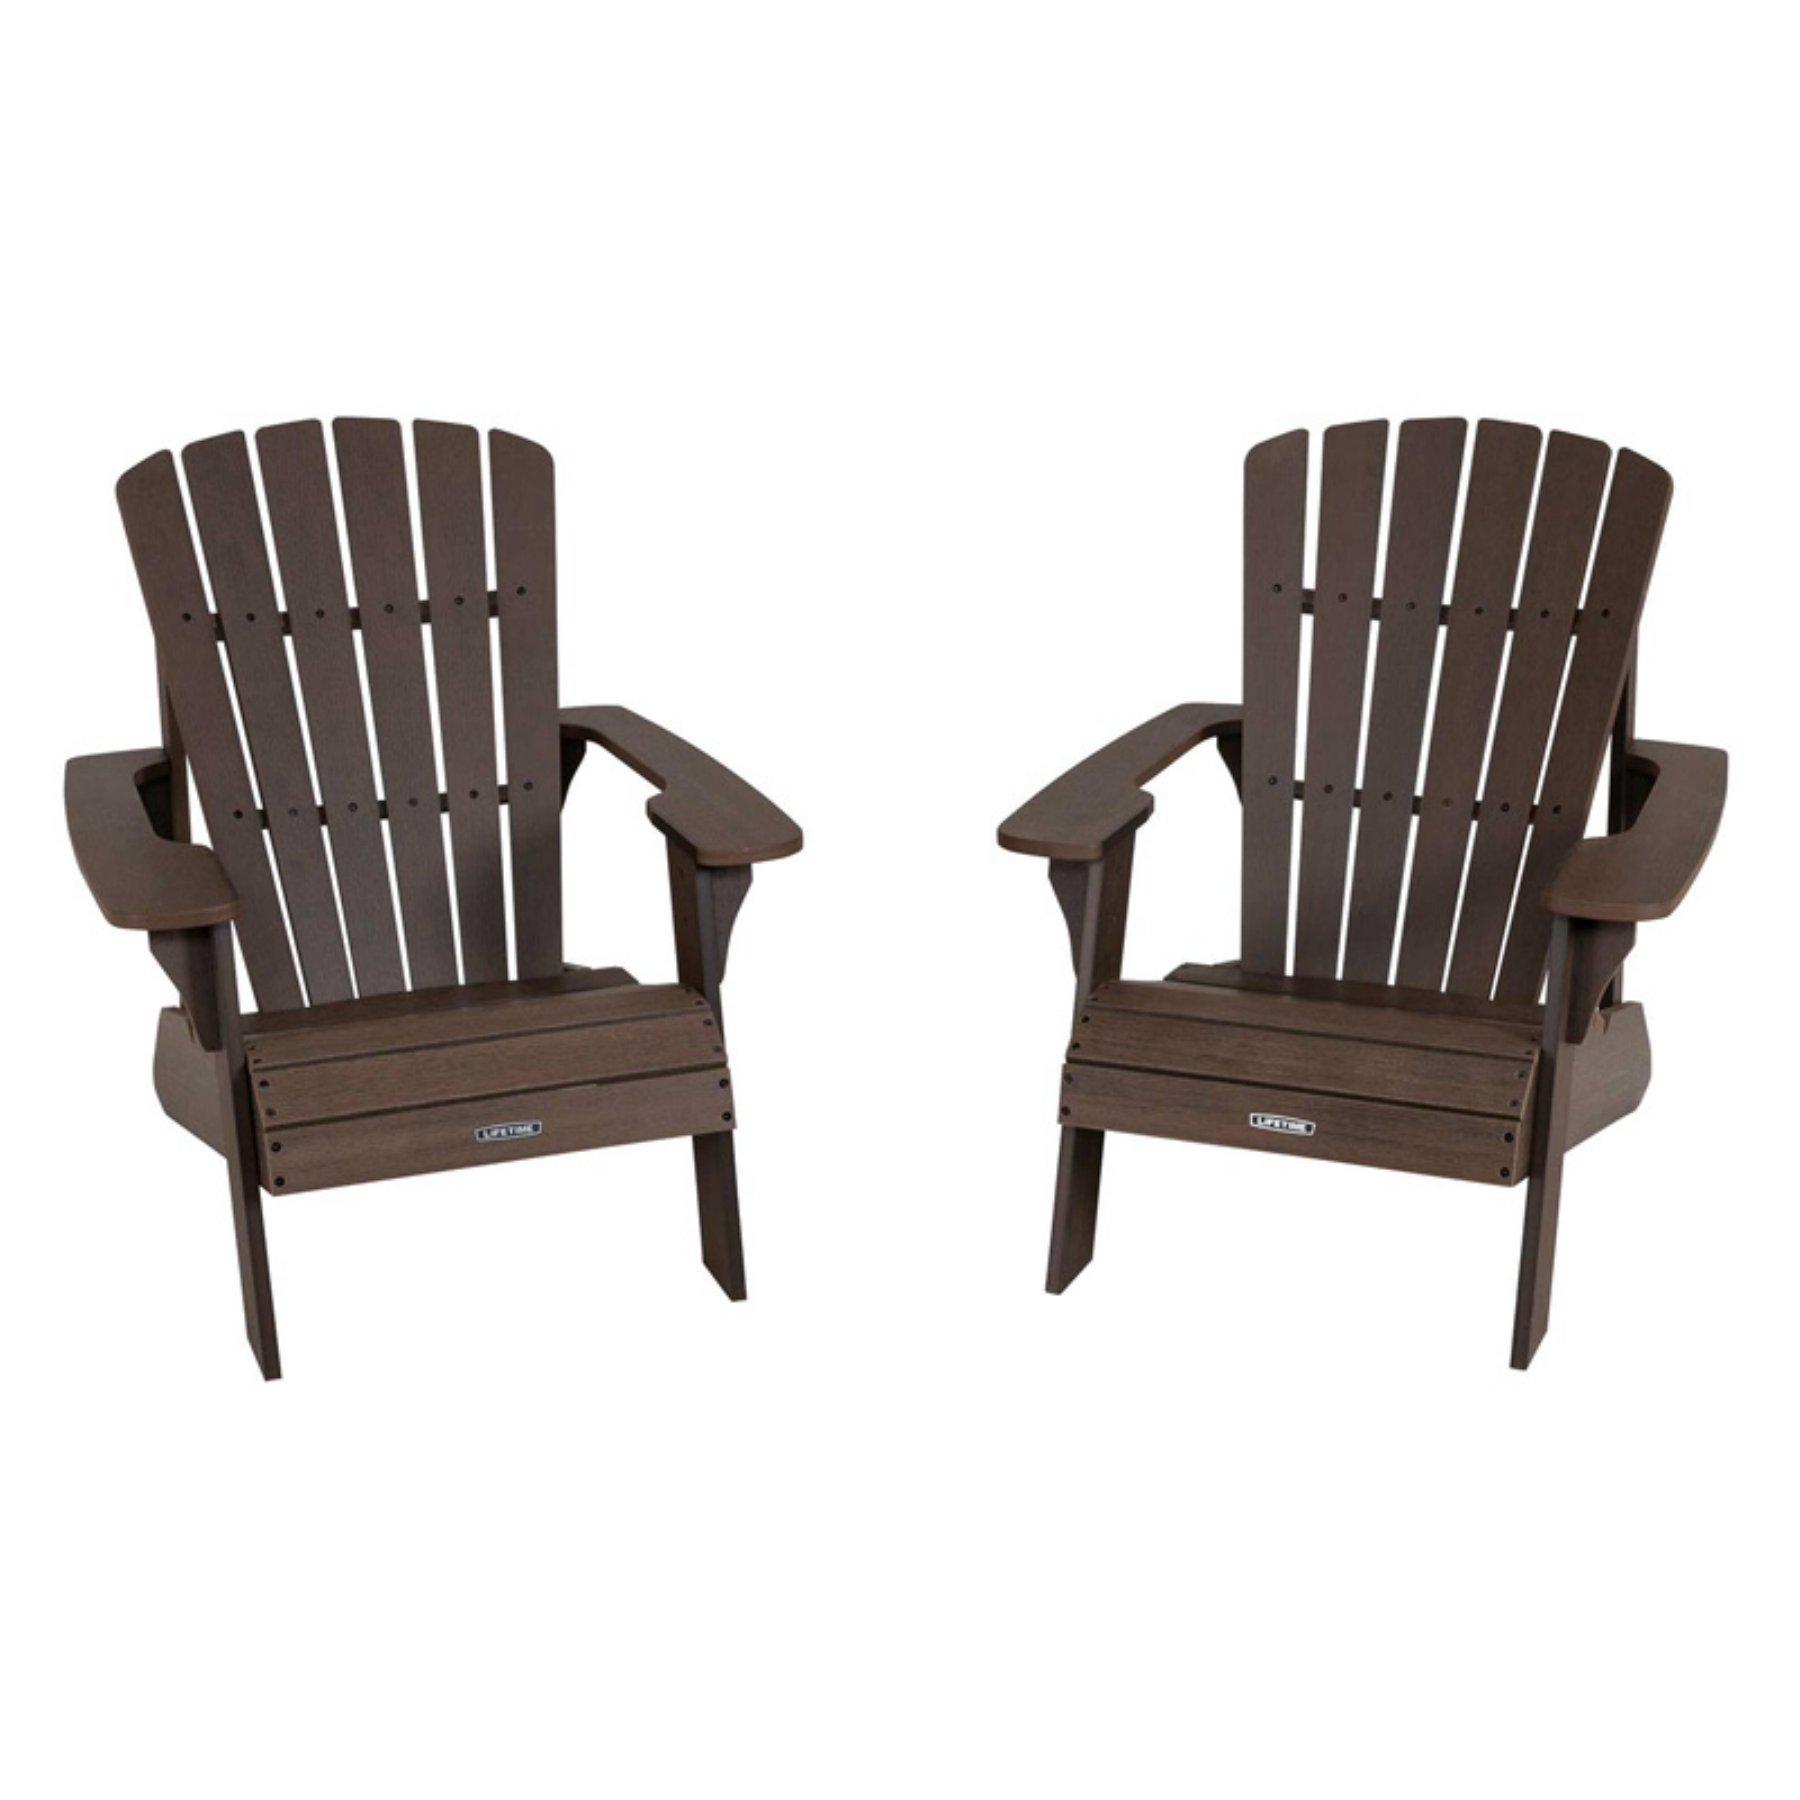 Outdoor Lifetime Adirondack Chair Brown Adirondack Chair